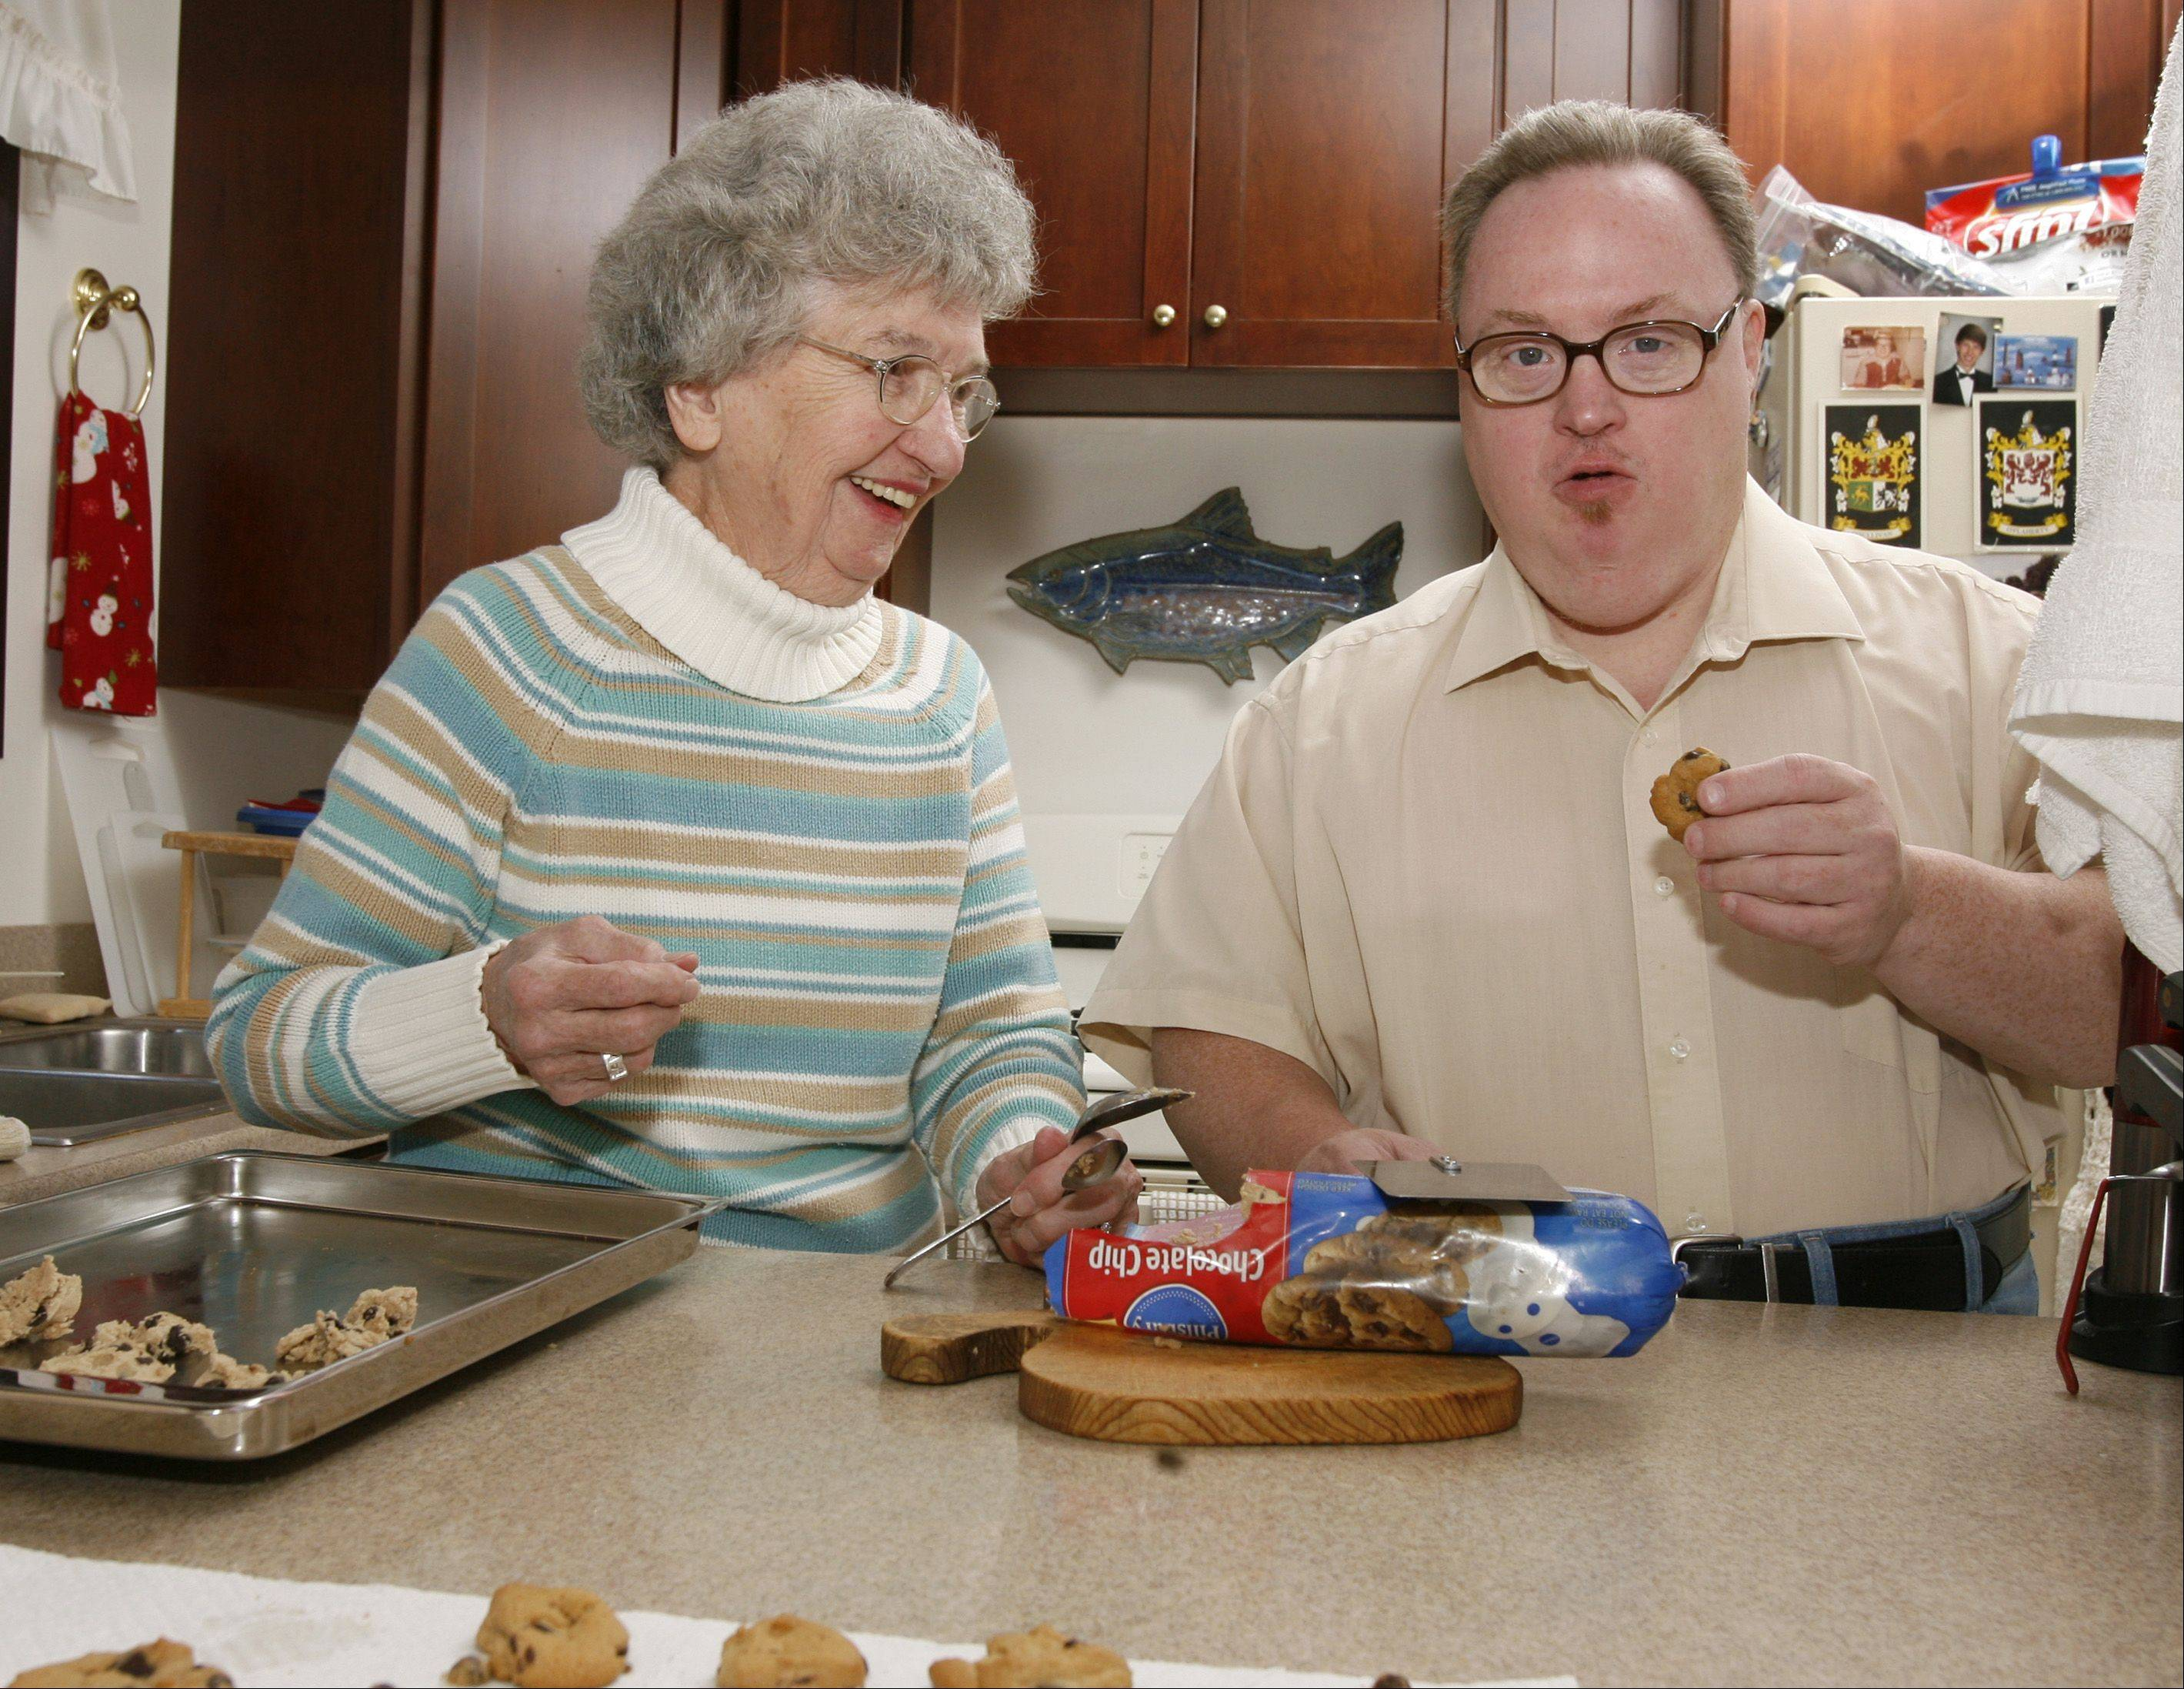 "When Marjorie Sullivan Lee's son Kevin was born in 1960 with Down syndrome, the doctor suggested that he could be institutionalized. Lee said no way. Now at 90, Lee has written about her family's story in her recently published book ""Bloom Where You Are Planted."" Above, both like to make chocolate chip cookies."